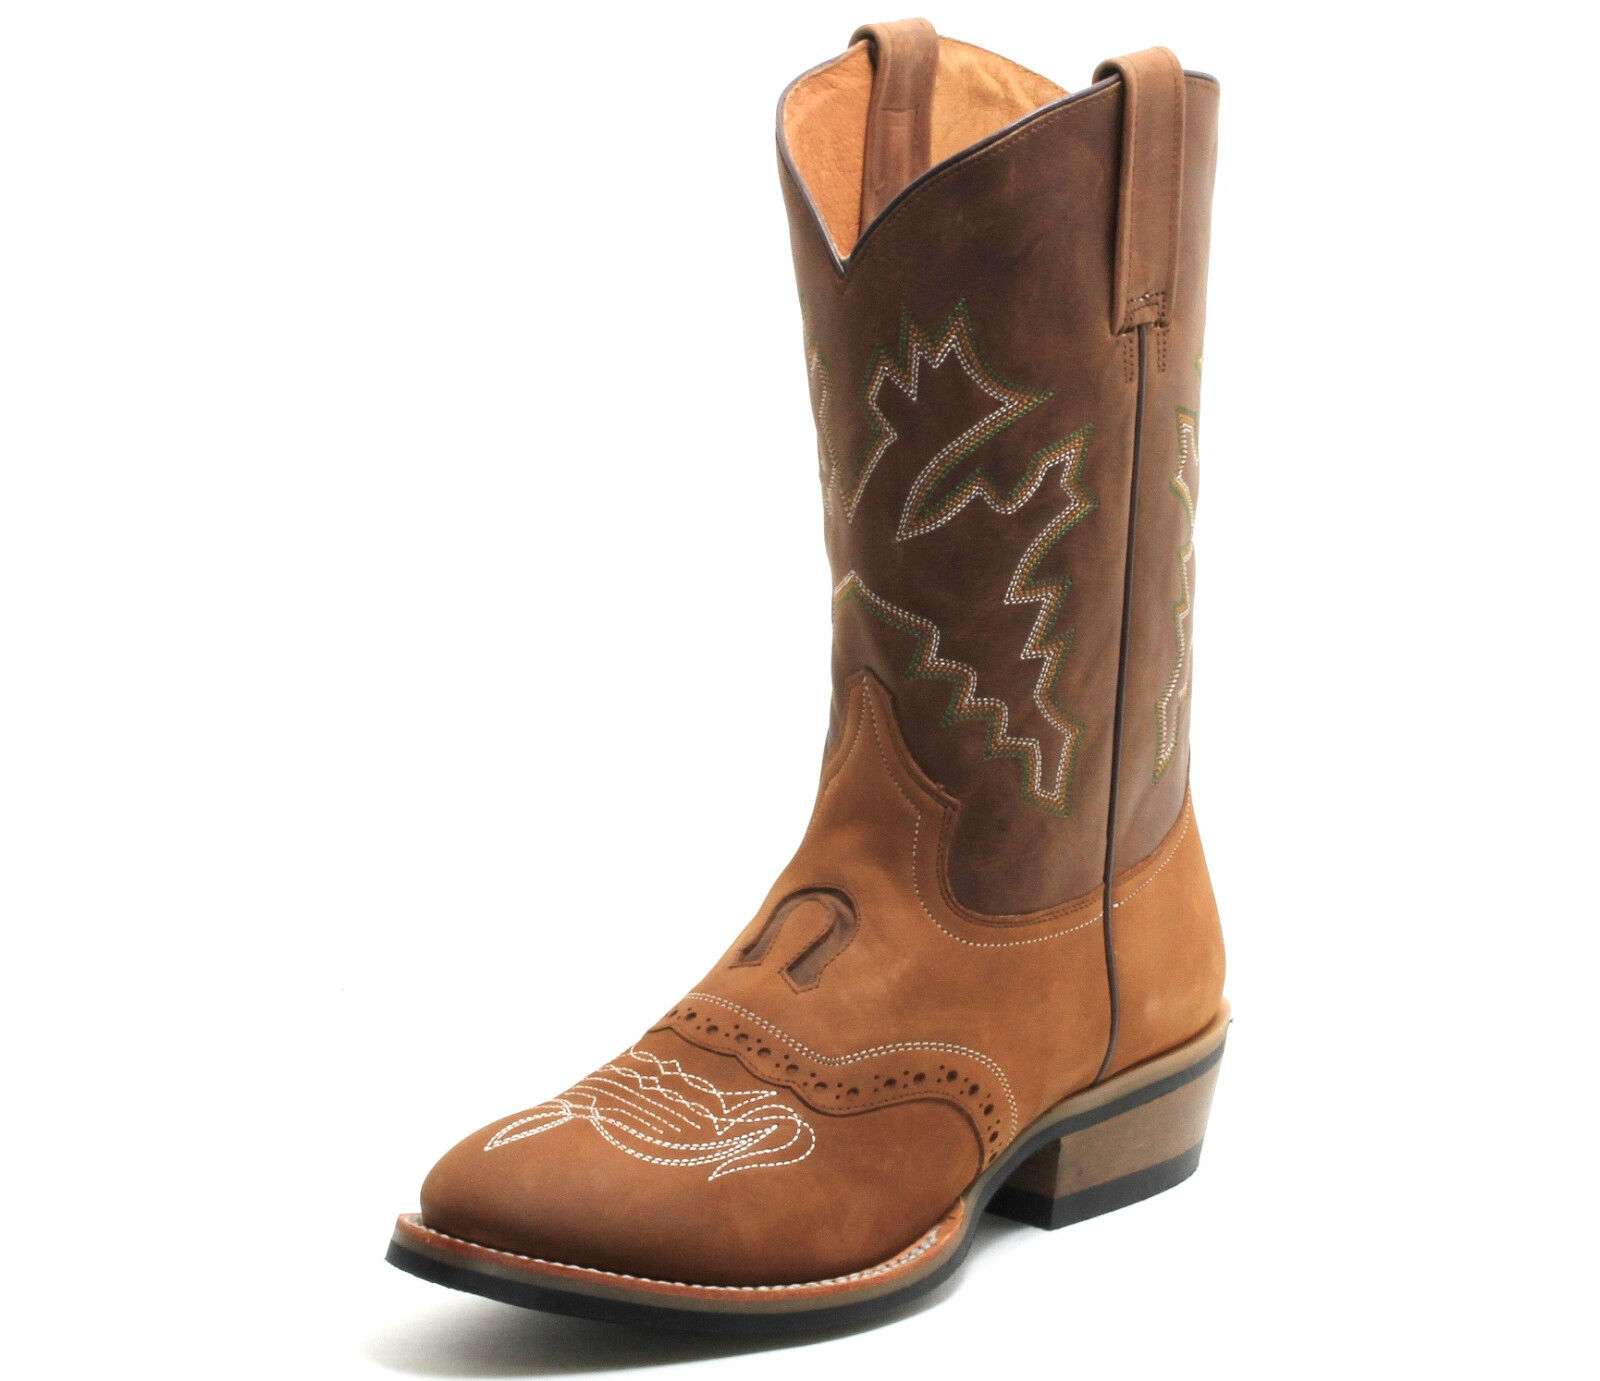 156 Cowboy Boots Western Boots Westernreitstiefel Western Riding Boots Texas 44